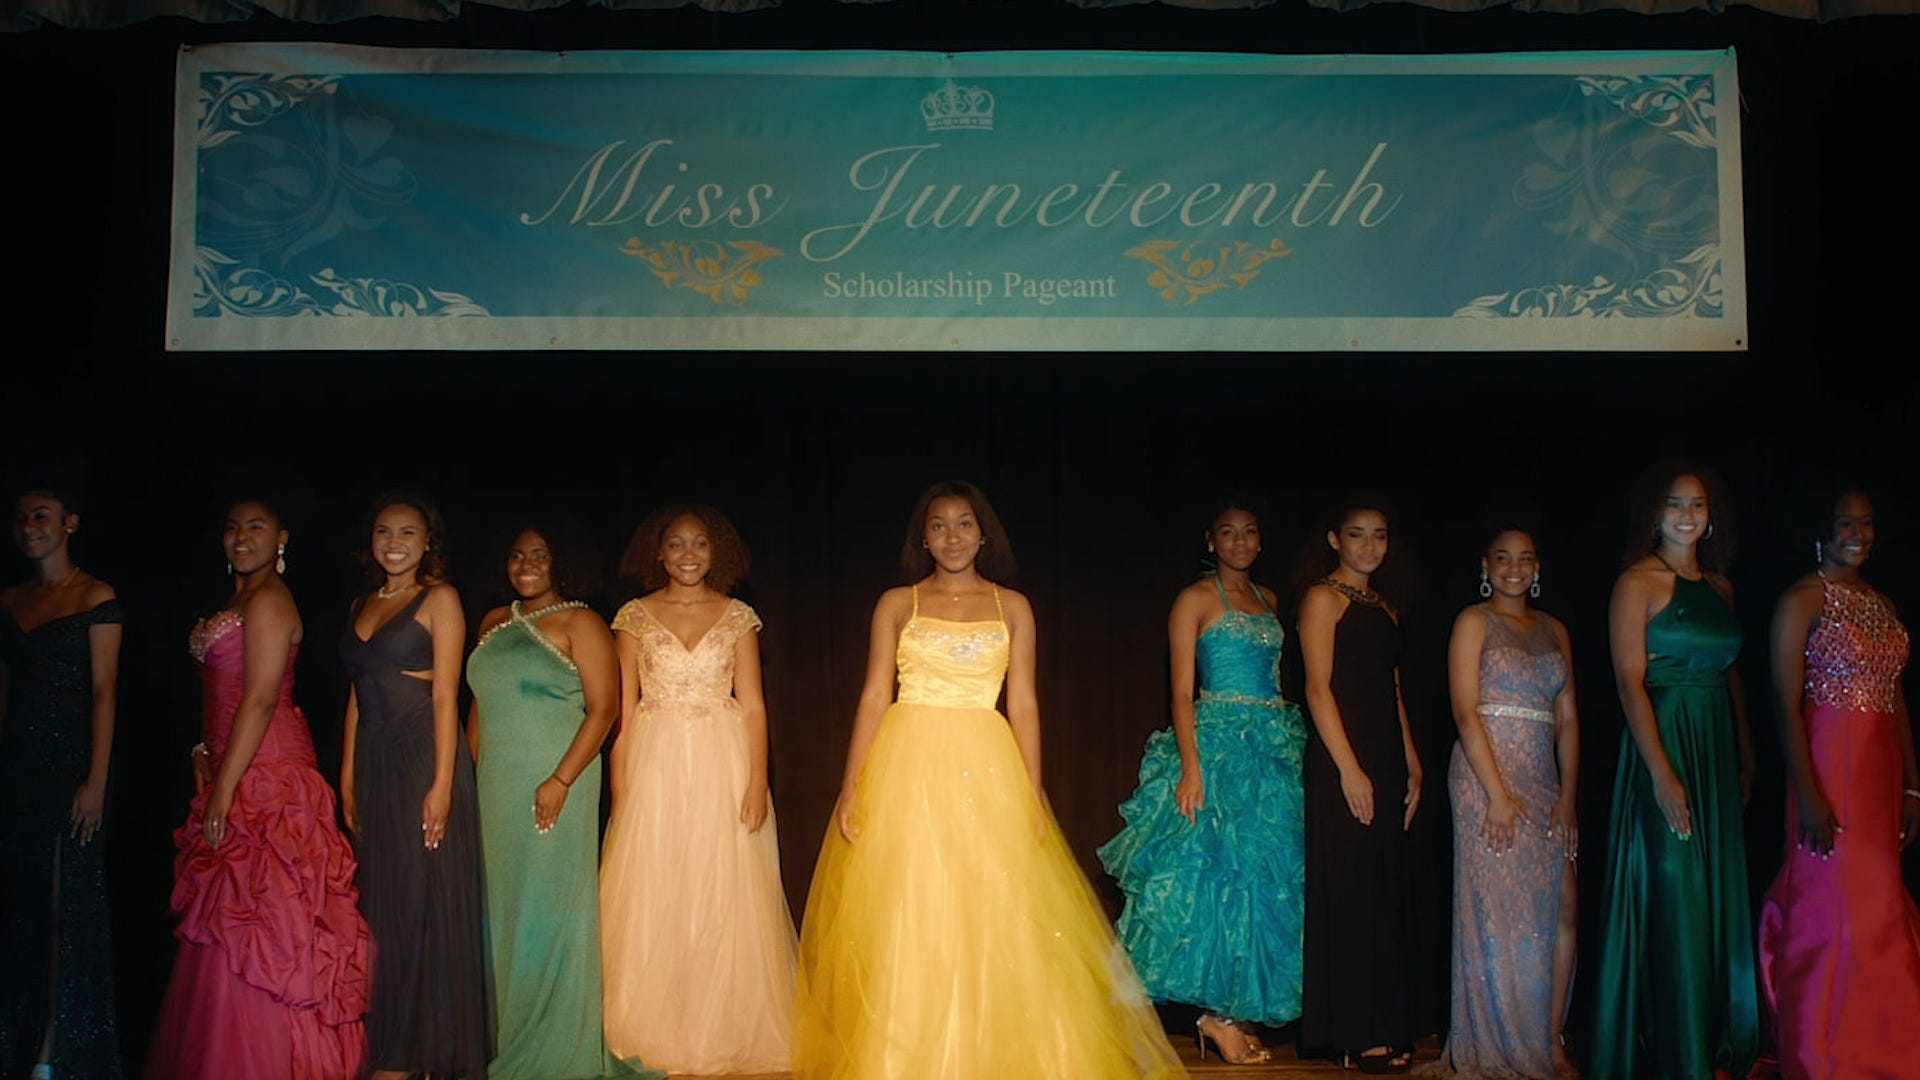 Miss Juneteenth' is the American Dream deferred: The movie's most ...